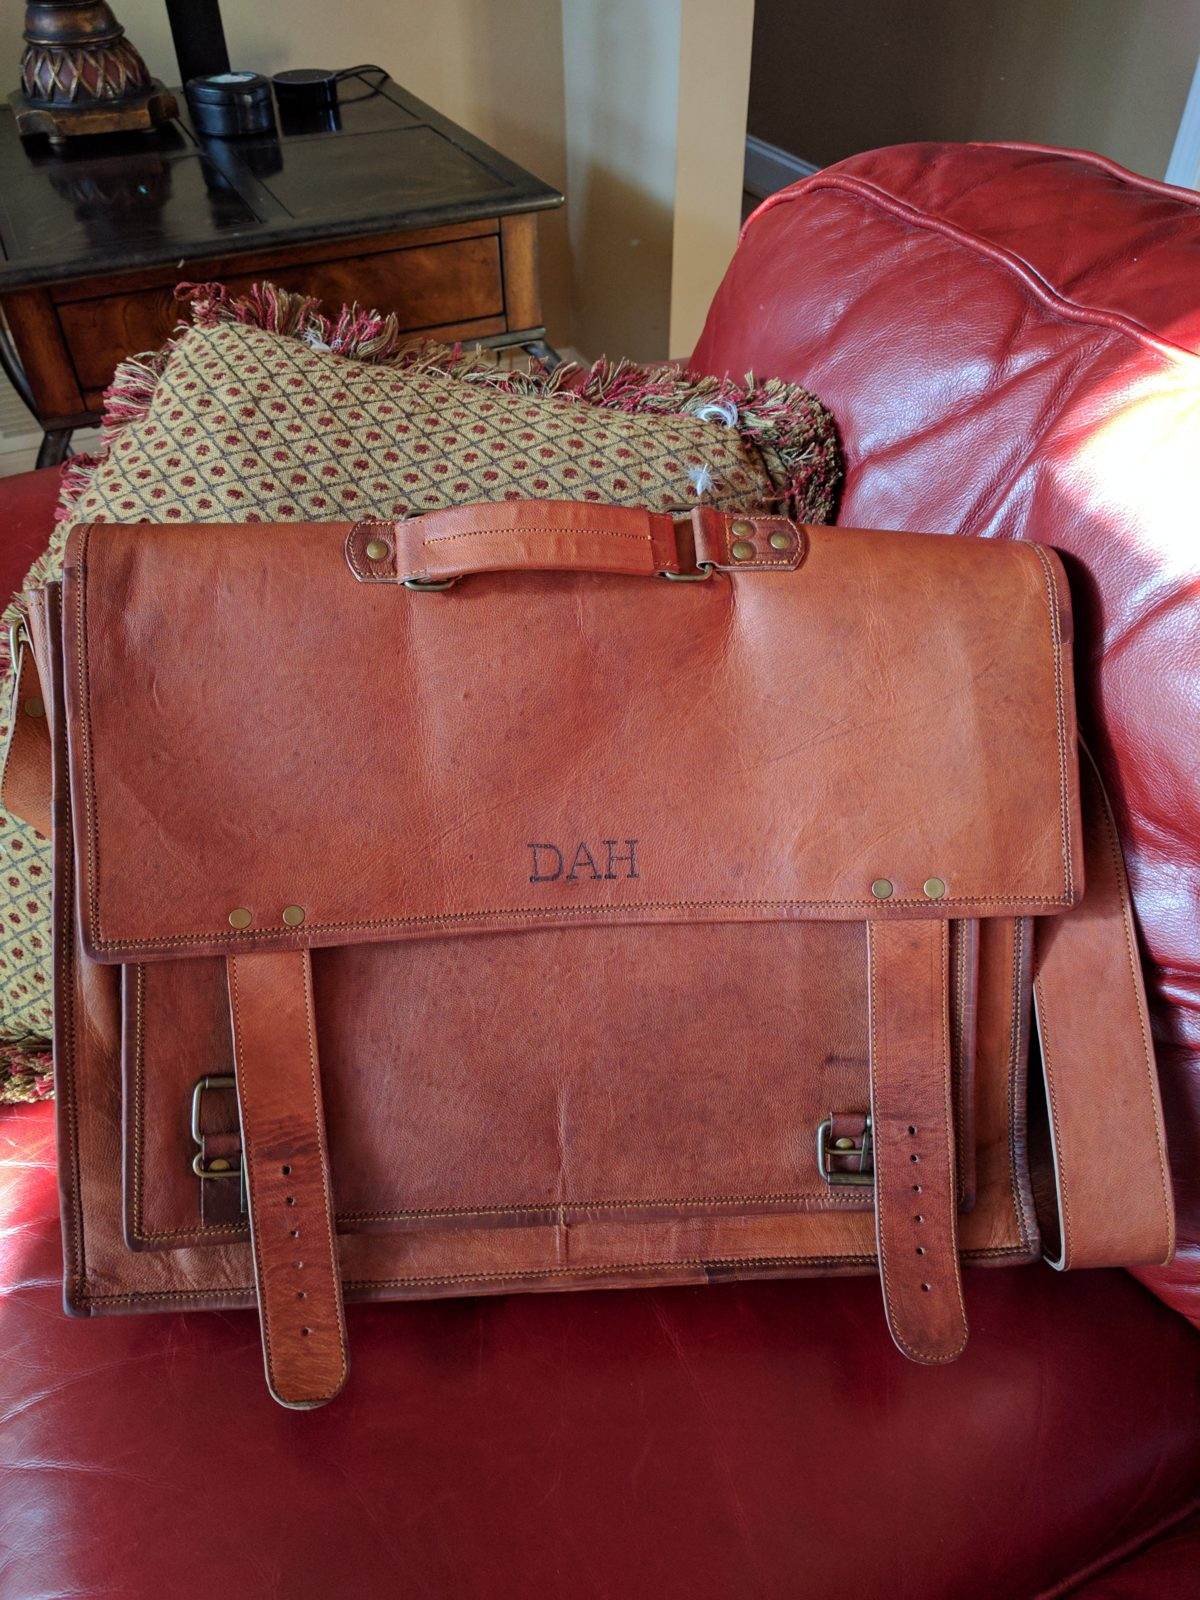 A Monogrammed Briefcase for a Special Client